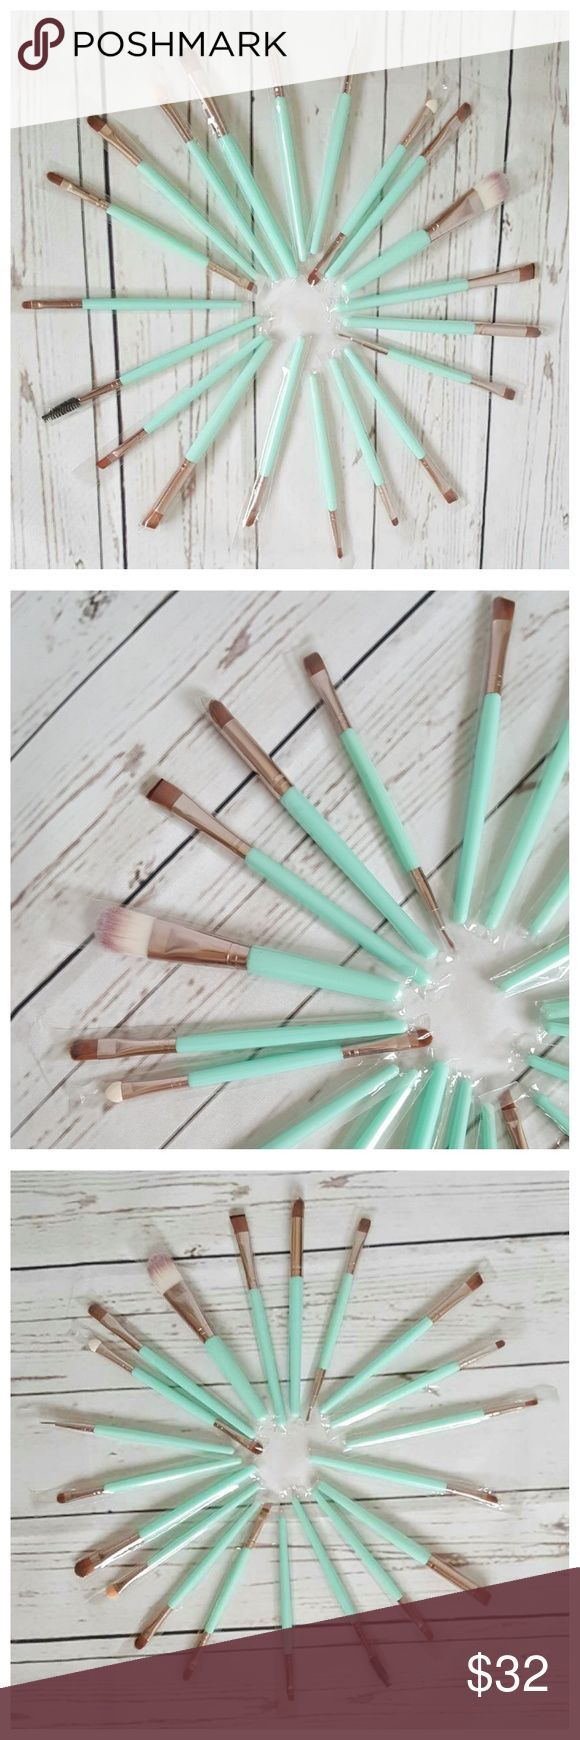 20pc Makeup Brush Tools Set- Mint Green & Gold 100% Brand new & high quality make-up brush set. Material: Goat Hair. Handle Material: Wood. Brush Material: Synthetic Hair. Professional quality brush set which includes all the basics for daily applications. Items included: Foundation Powder Brush, Lip Brush, Mascara Brush, Eyeshadow Brush, Two Sided Brushes, Eyebrow Mascara Brush, Sponge Brush, Smudge Brush, Nose Shadow Brush, Eyeliner Brush. Each brush packaged individually. Color:  Mint…